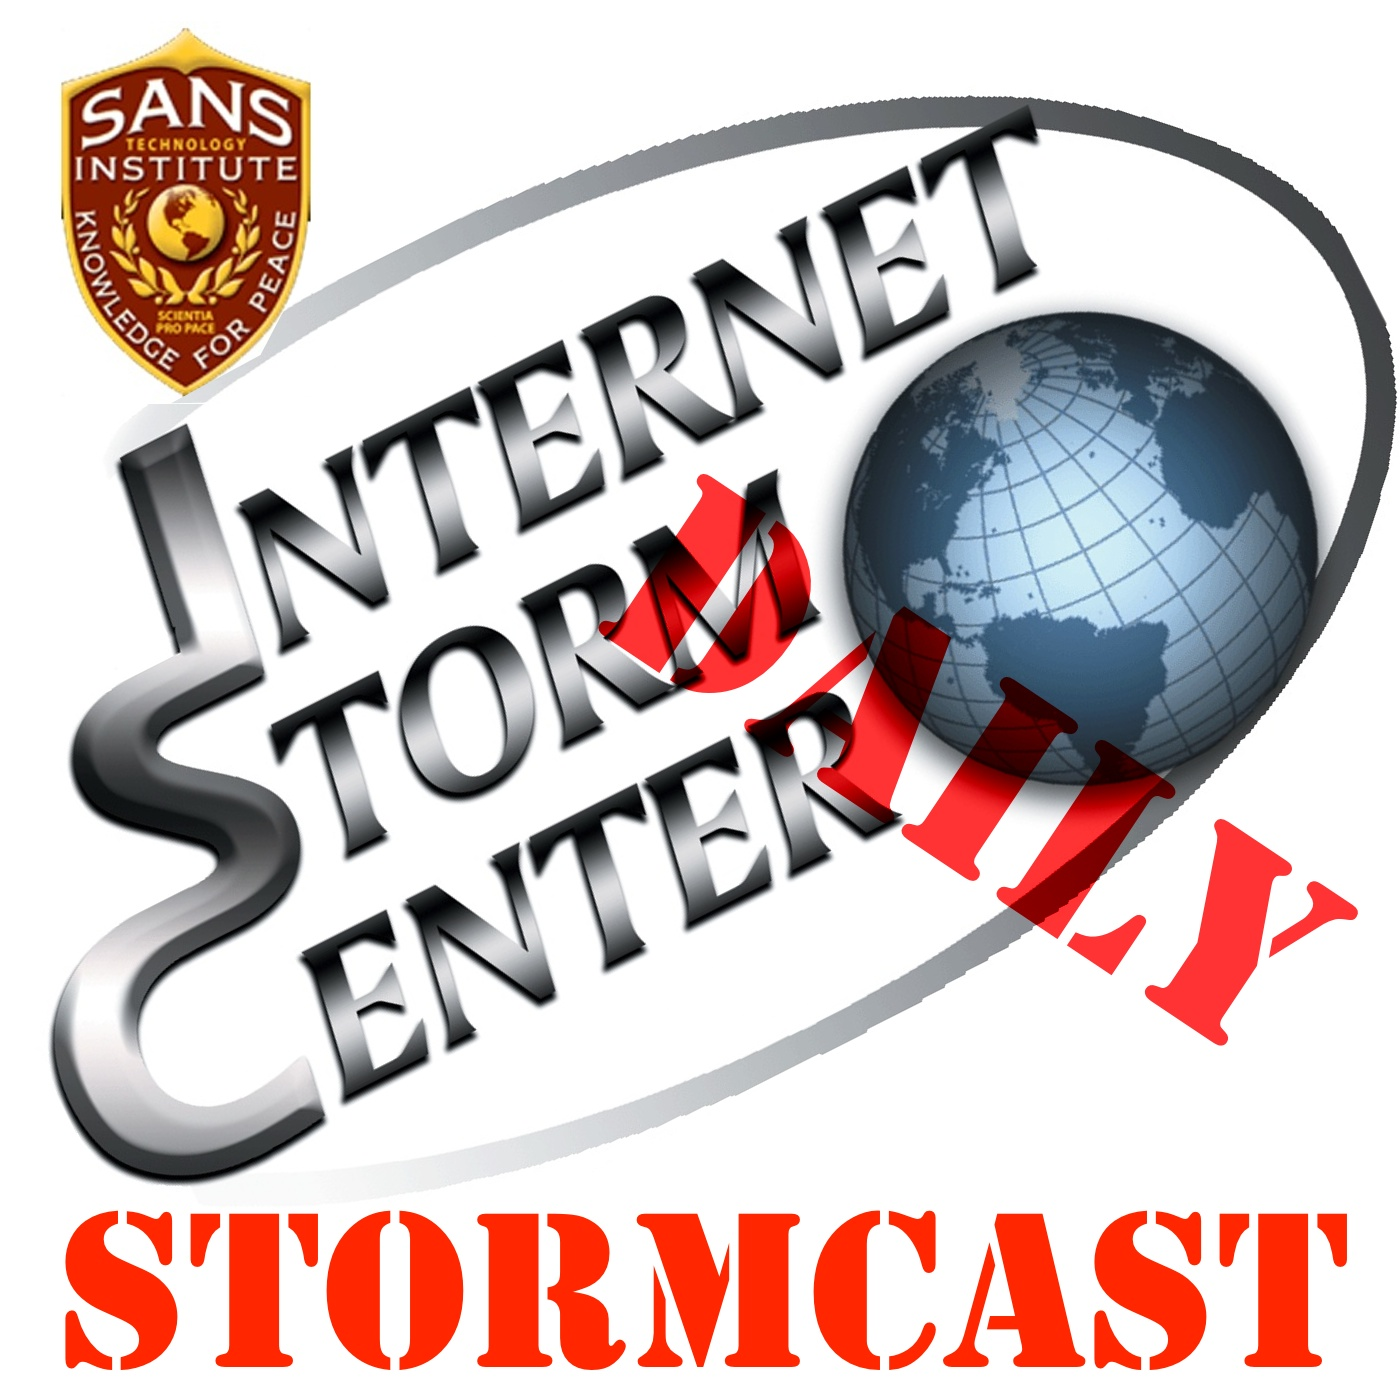 SANS Internet Storm Center Daily Network Security and Information Security Podcast